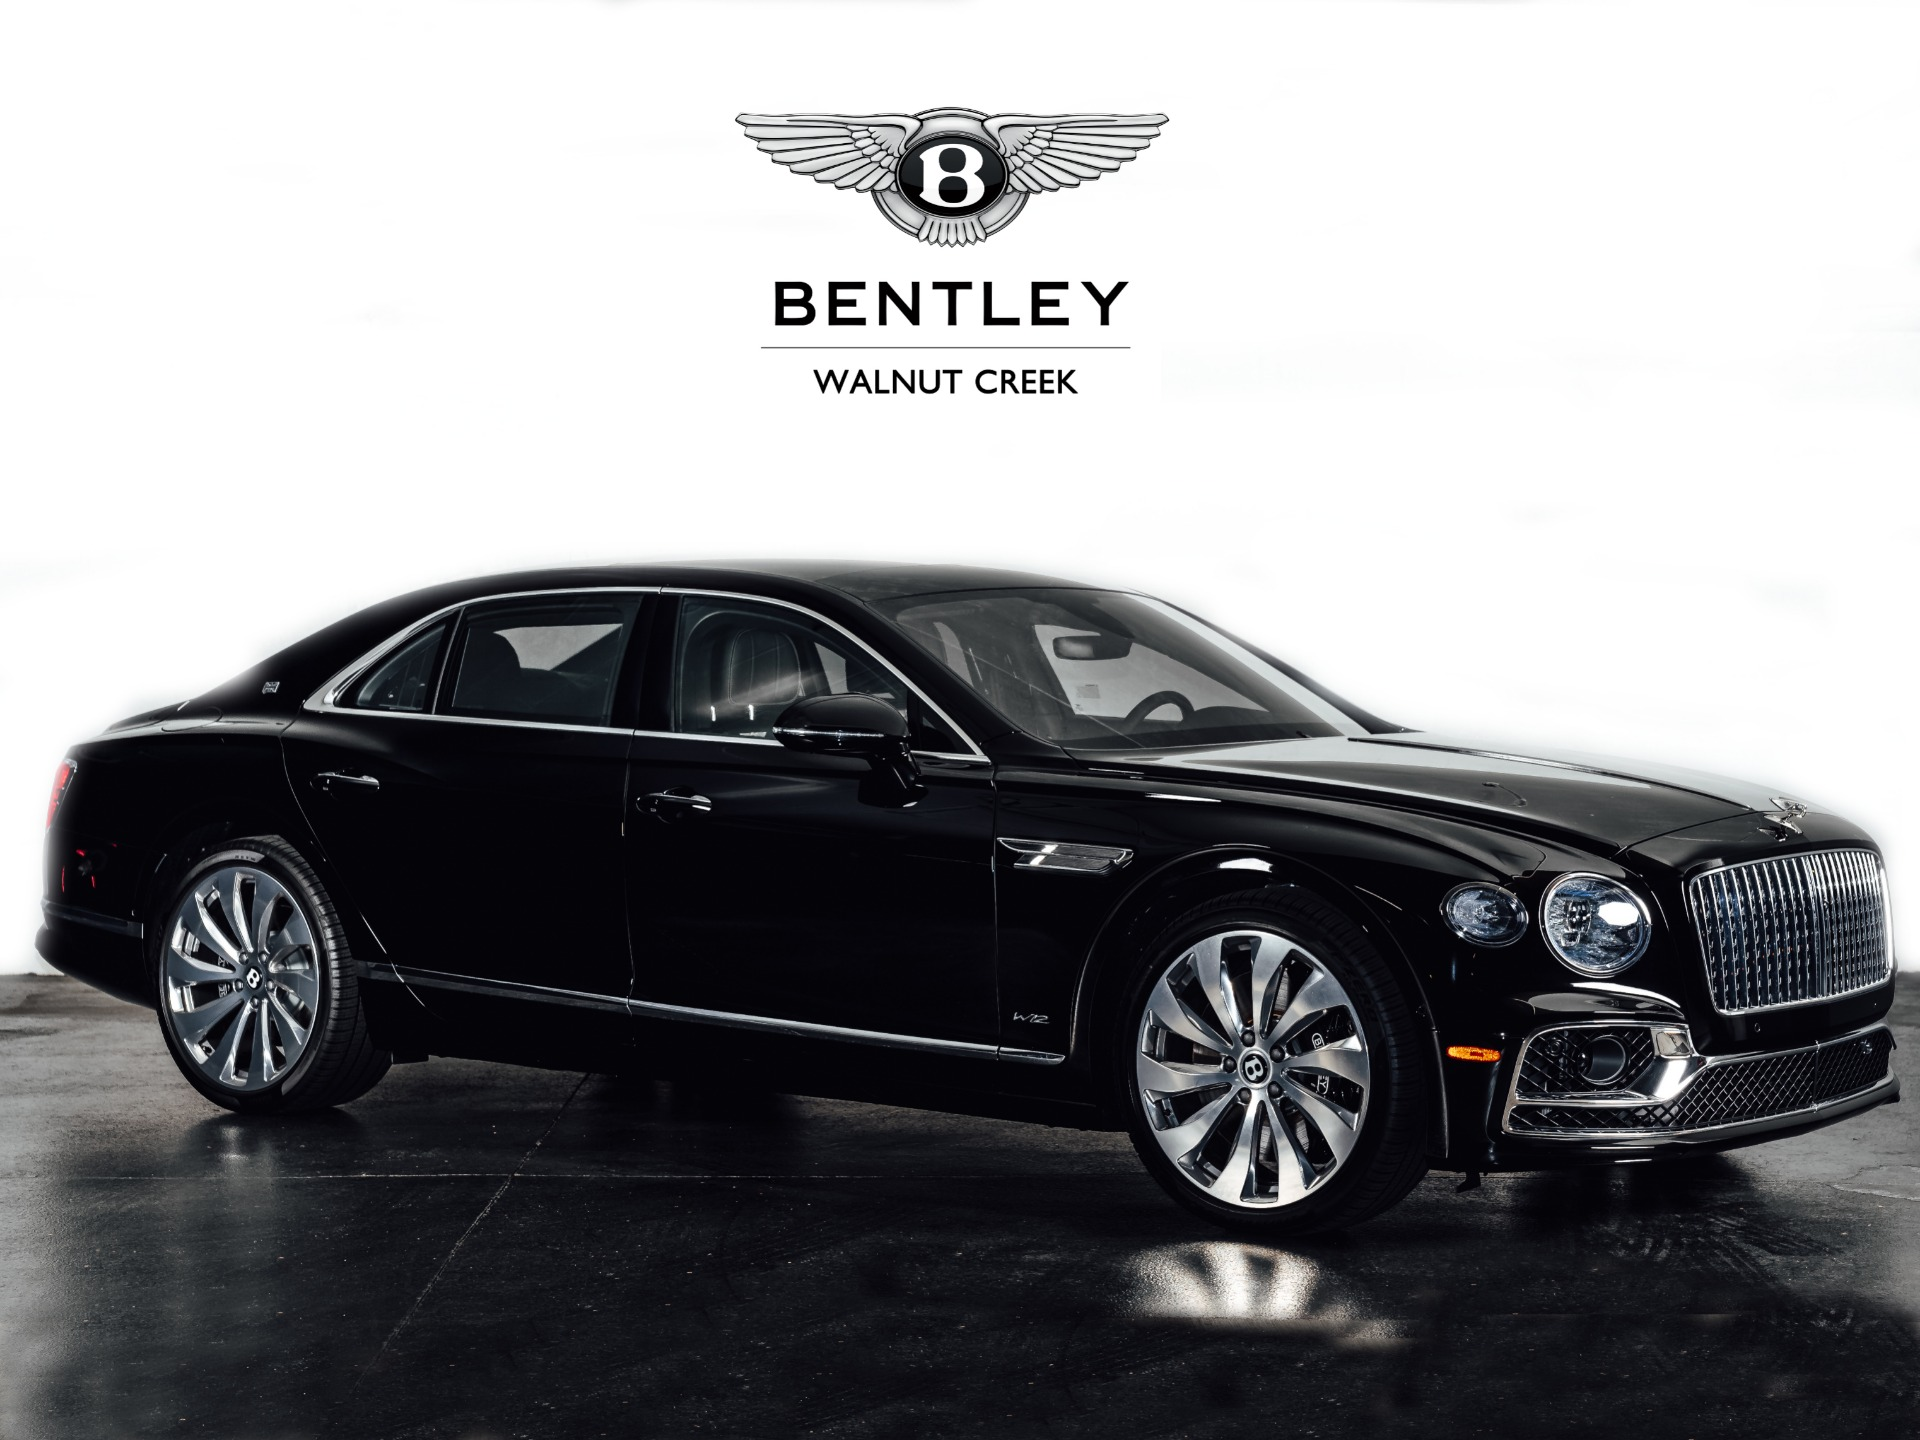 New 2020 Bentley Flying Spur W12 For Sale 276 070 The Luxury Collection Walnut Creek Stock B228